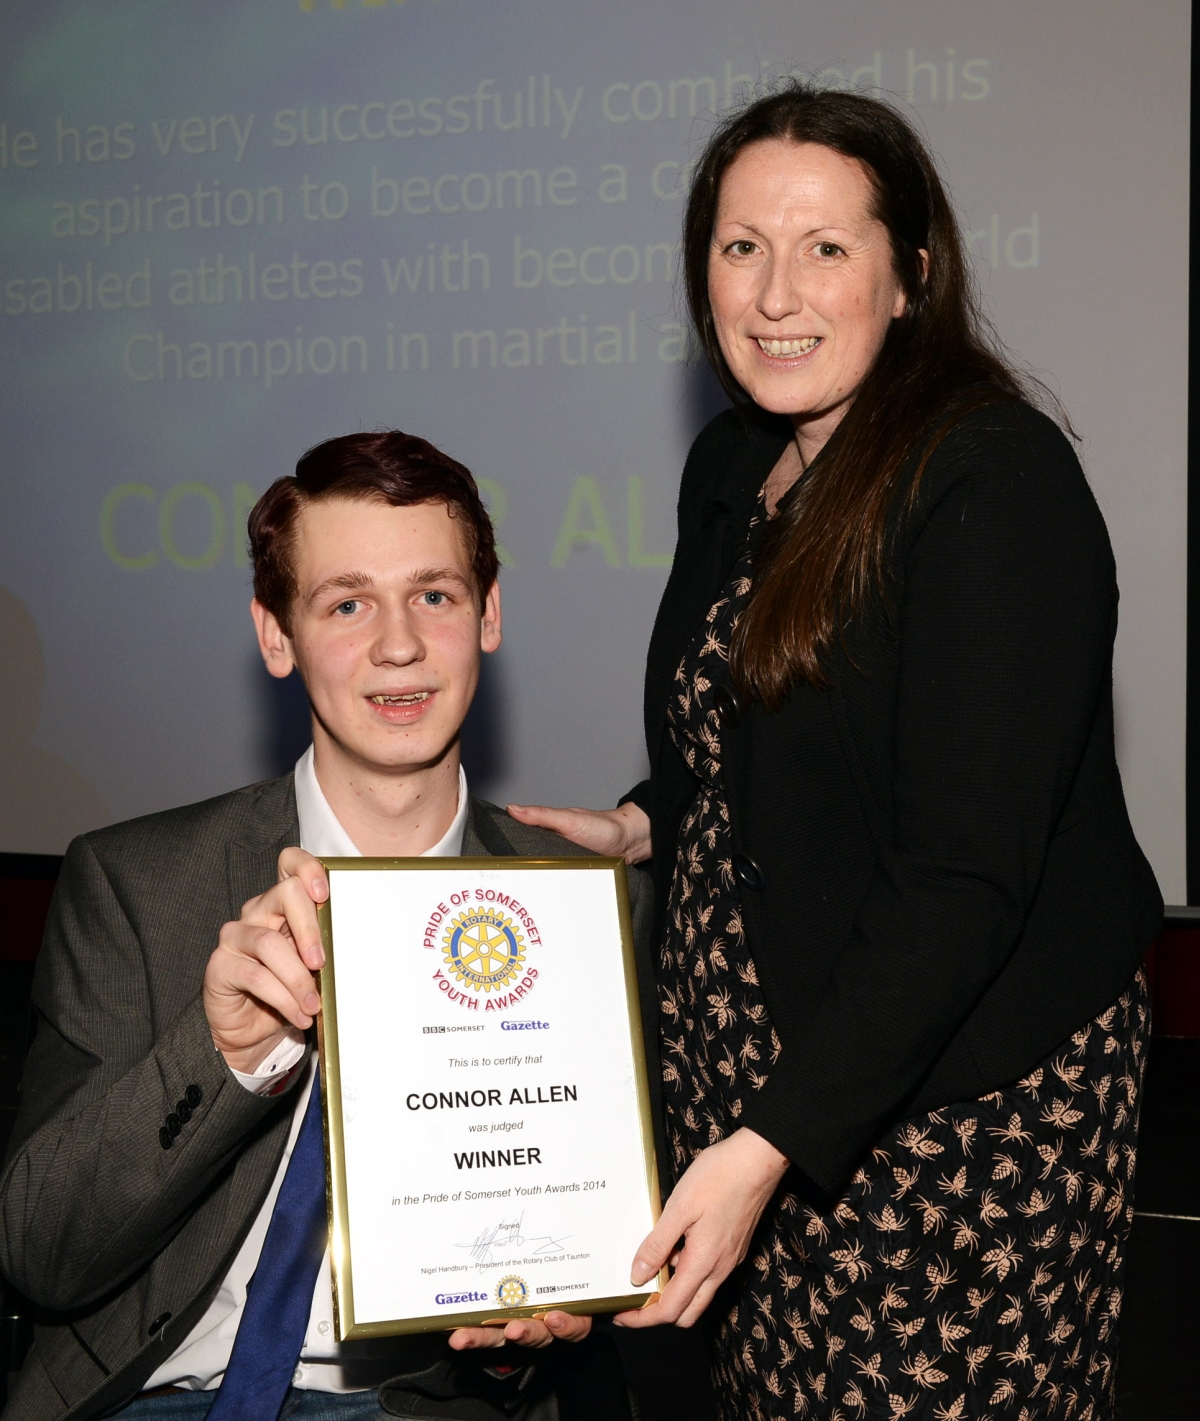 CONNOR Allen receives his award from Tamsin Curnow, editor of BBC Somerset.